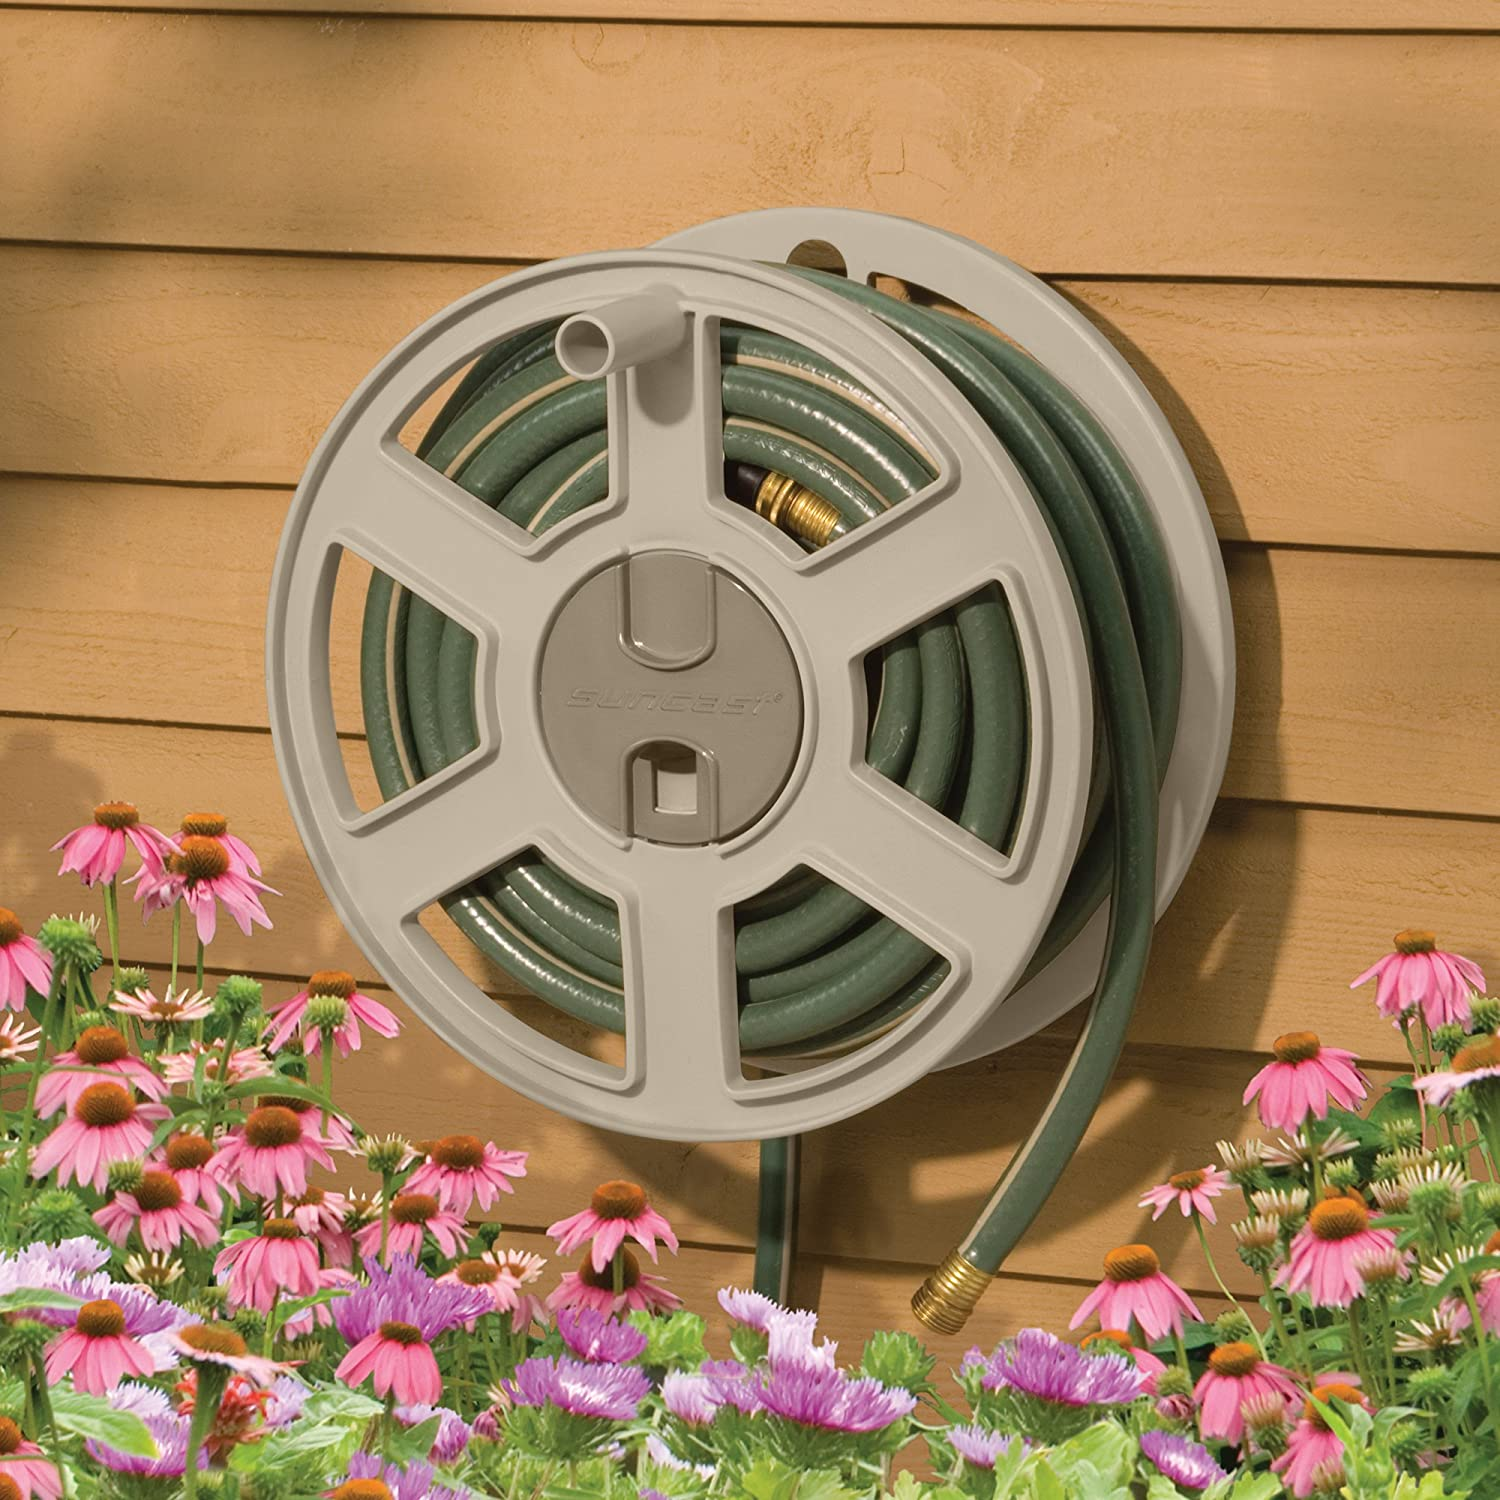 Suncast SWA100 100-Foot Garden Hose Capacity Wall-Mounted Sidetracker Hose Reel, Taupe: Amazon.es: Jardín